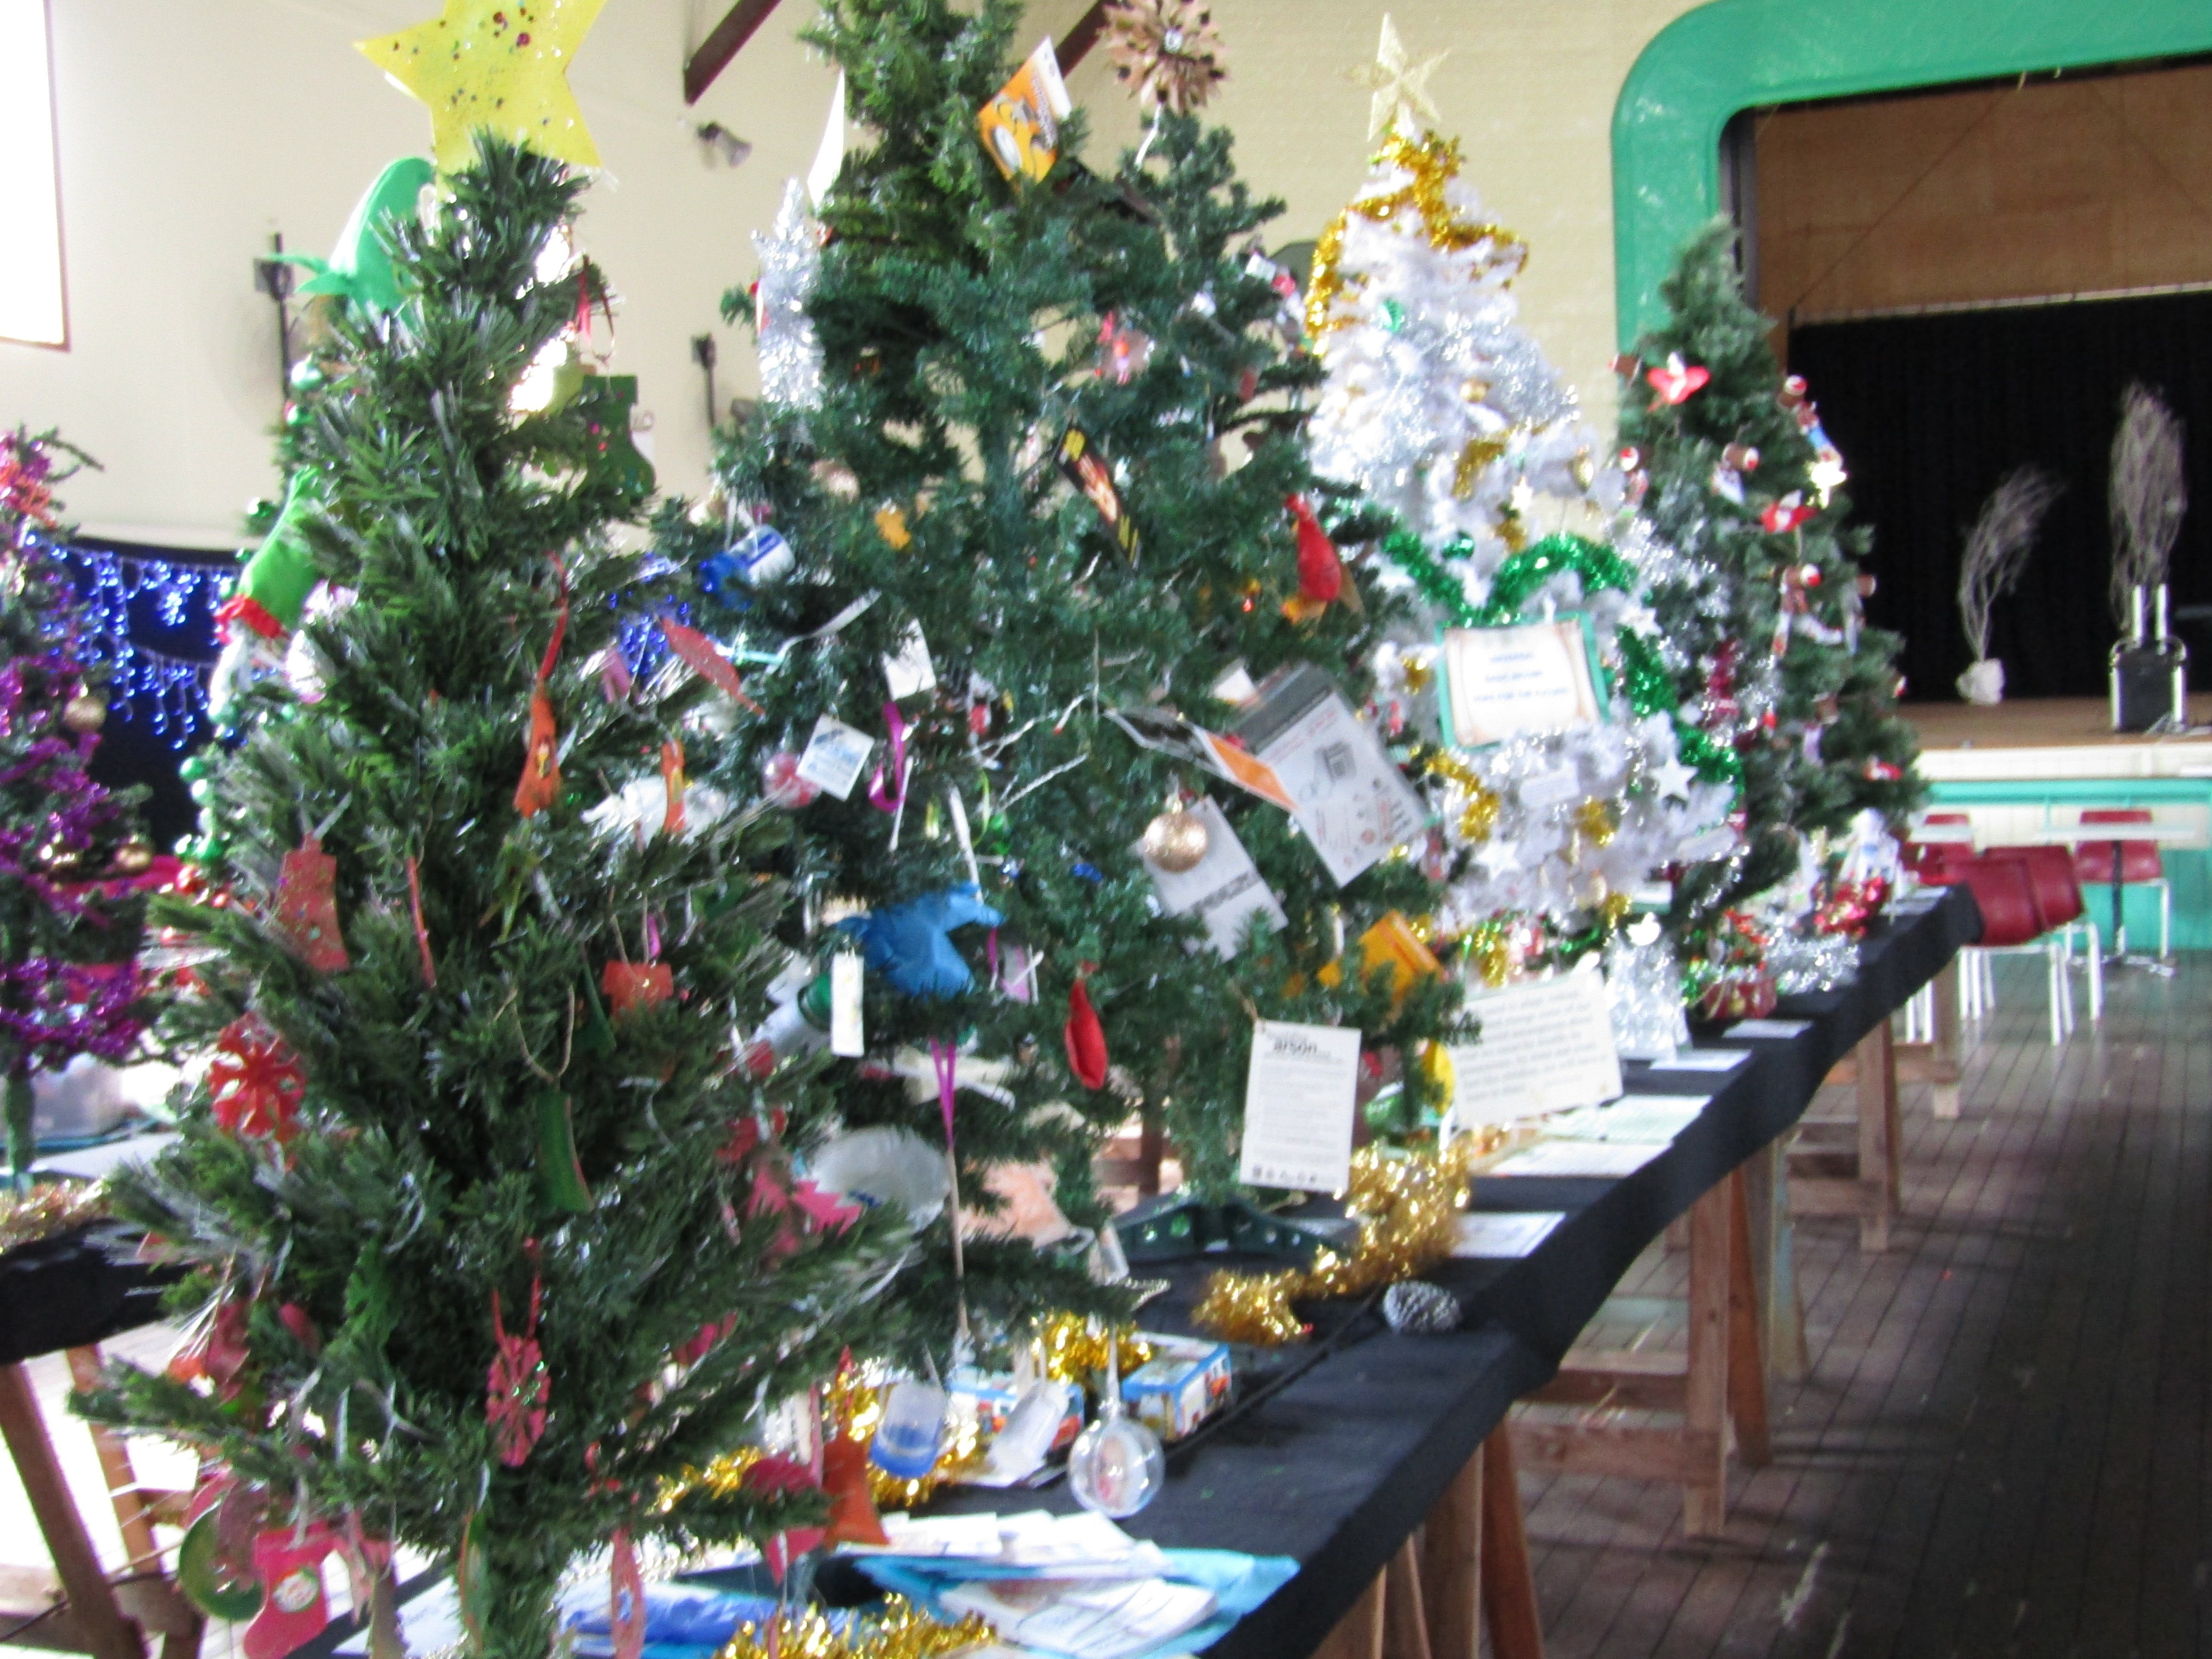 Mount Morgan Christmas Tree Festival - Sunshine Coast Tourism